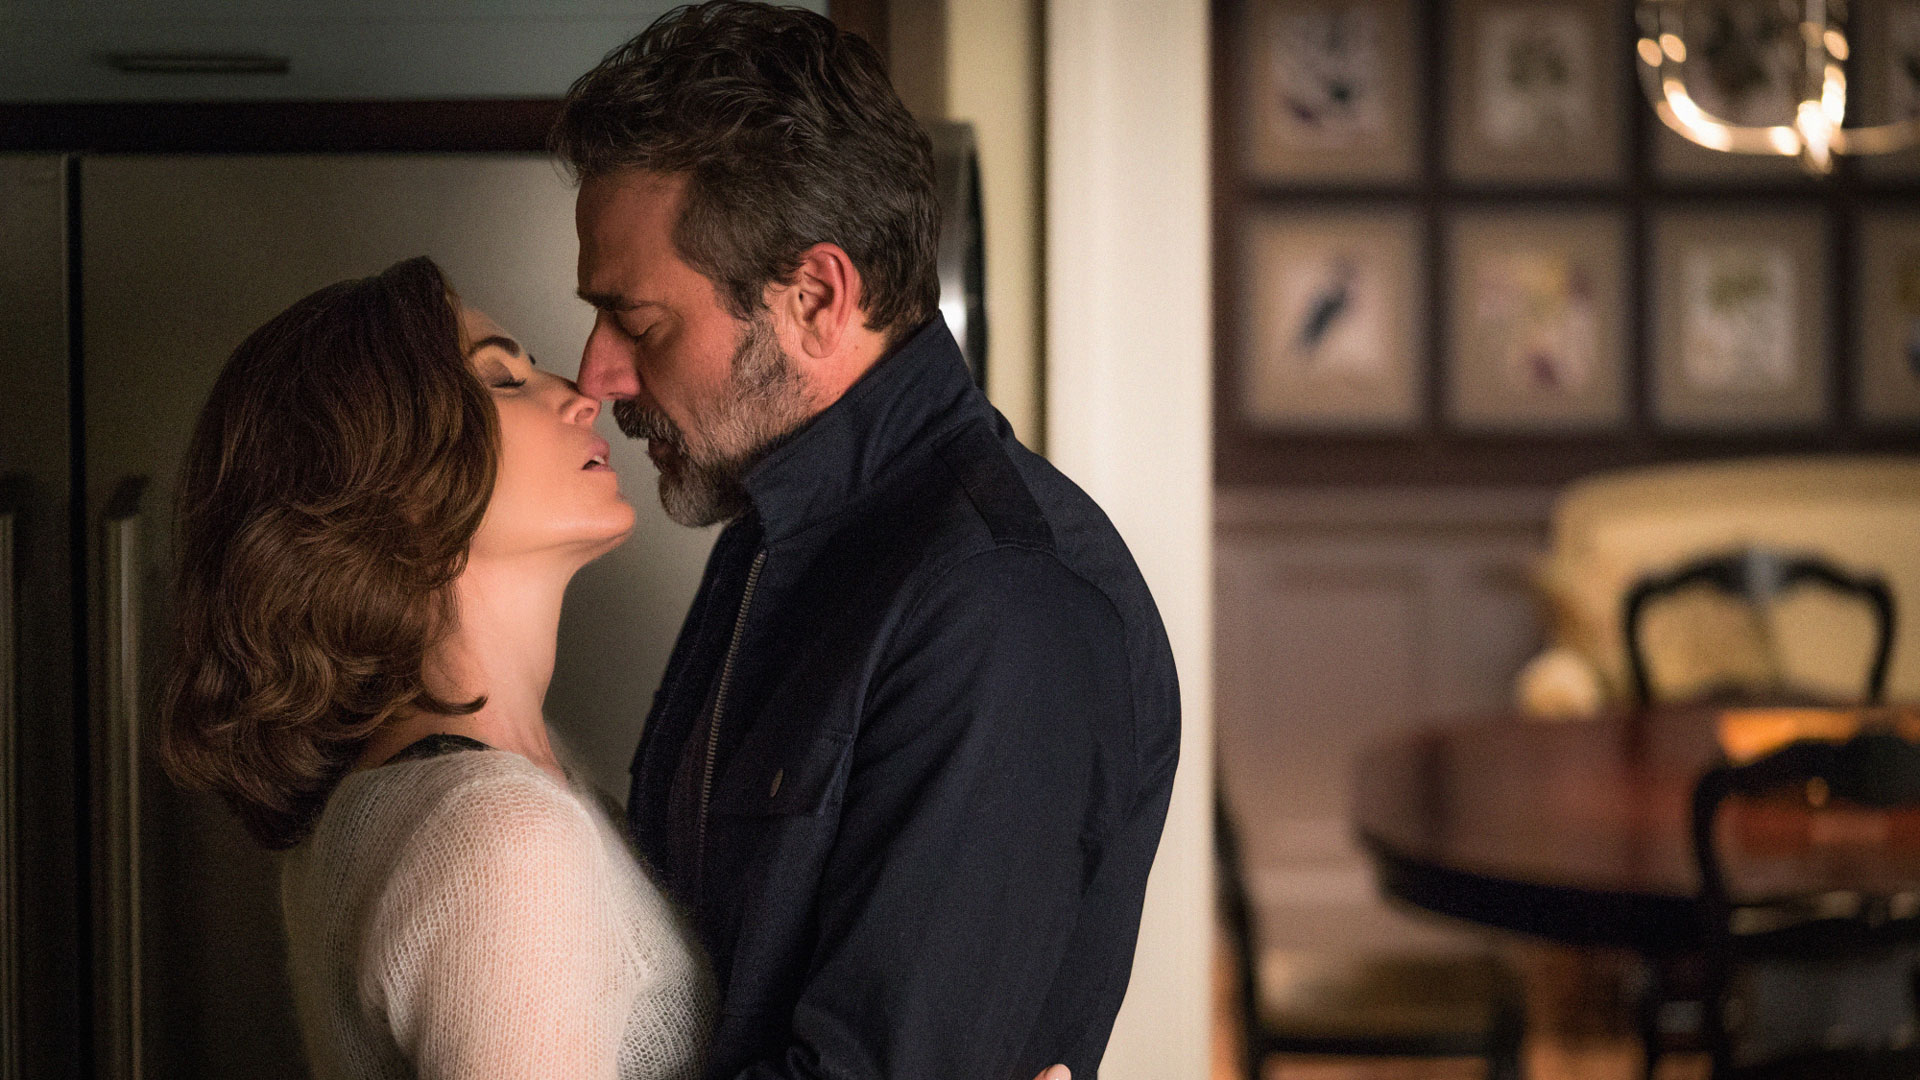 The Good Wife series finale airs on Sunday, May 8 at 9/8c.